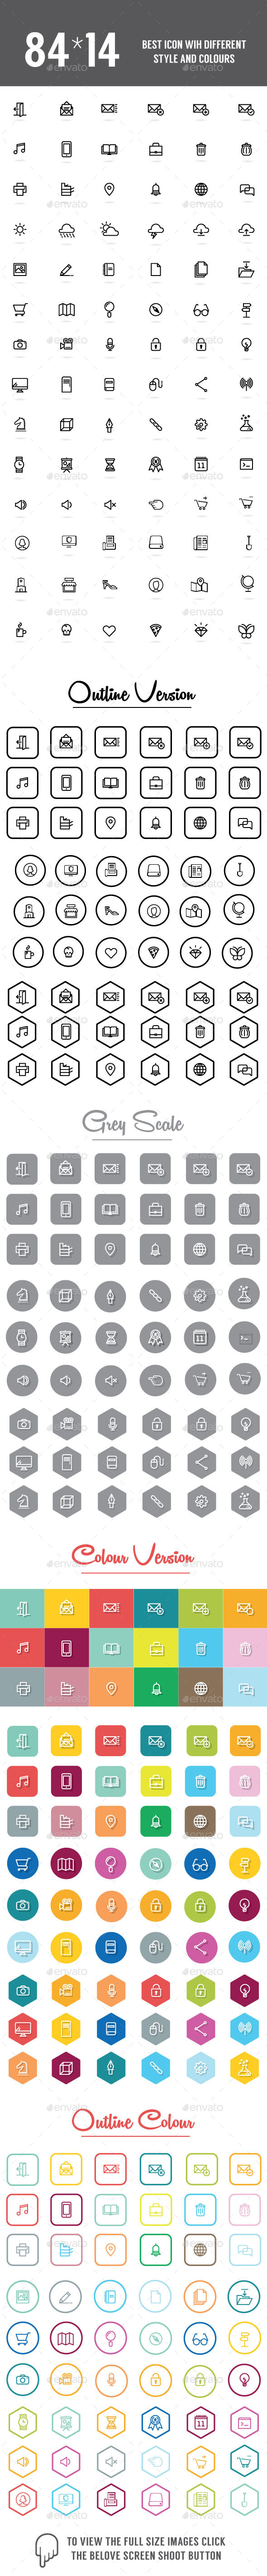 GraphicRiver 1176 Best Icons Set 11959719